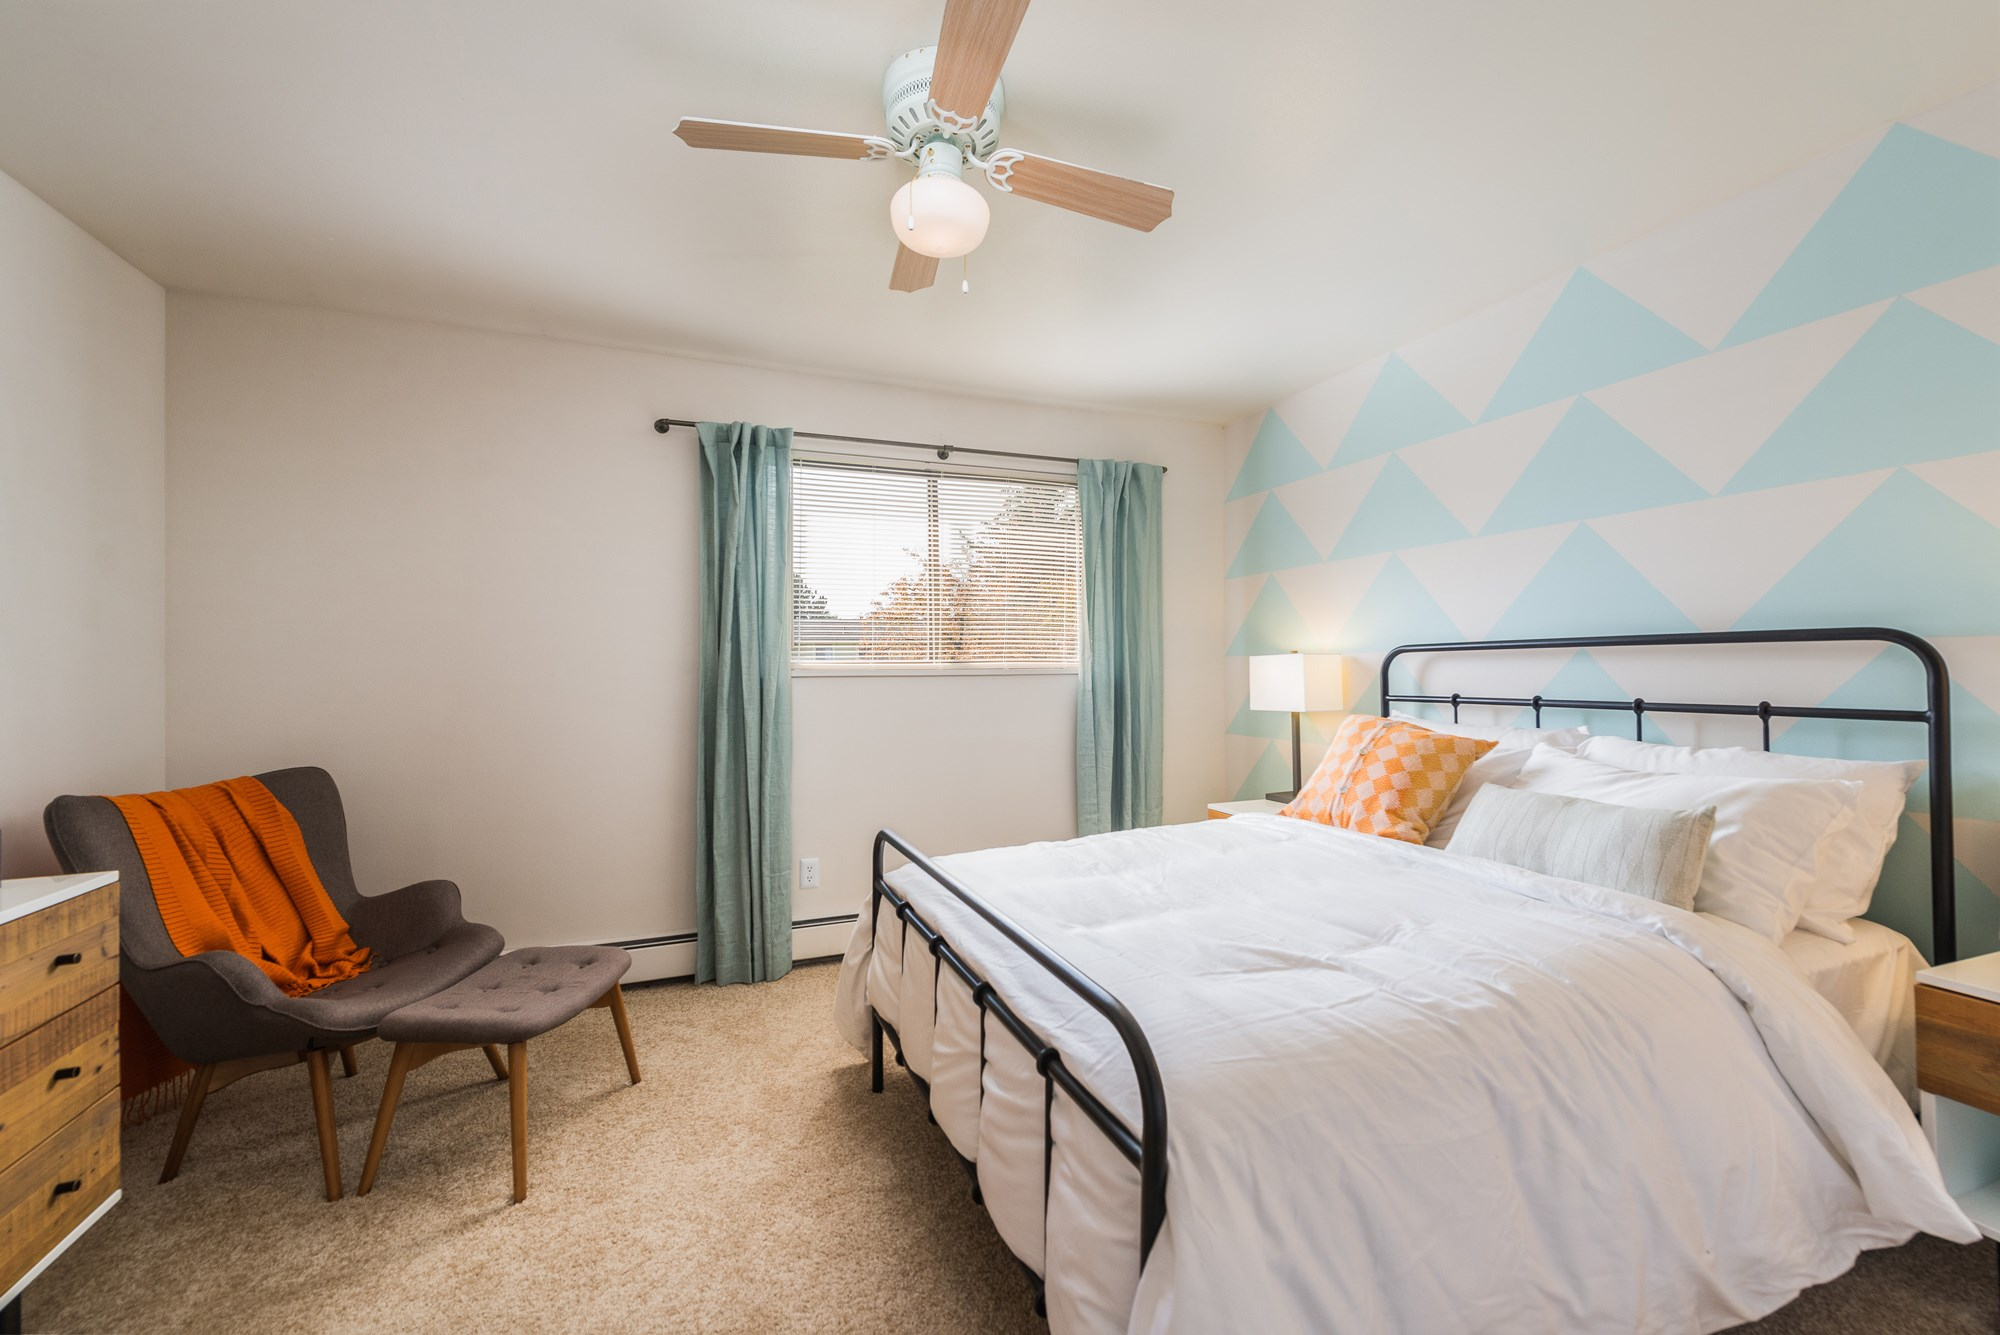 Bedroom at Village Gardens Apartments in Fort Collins, CO